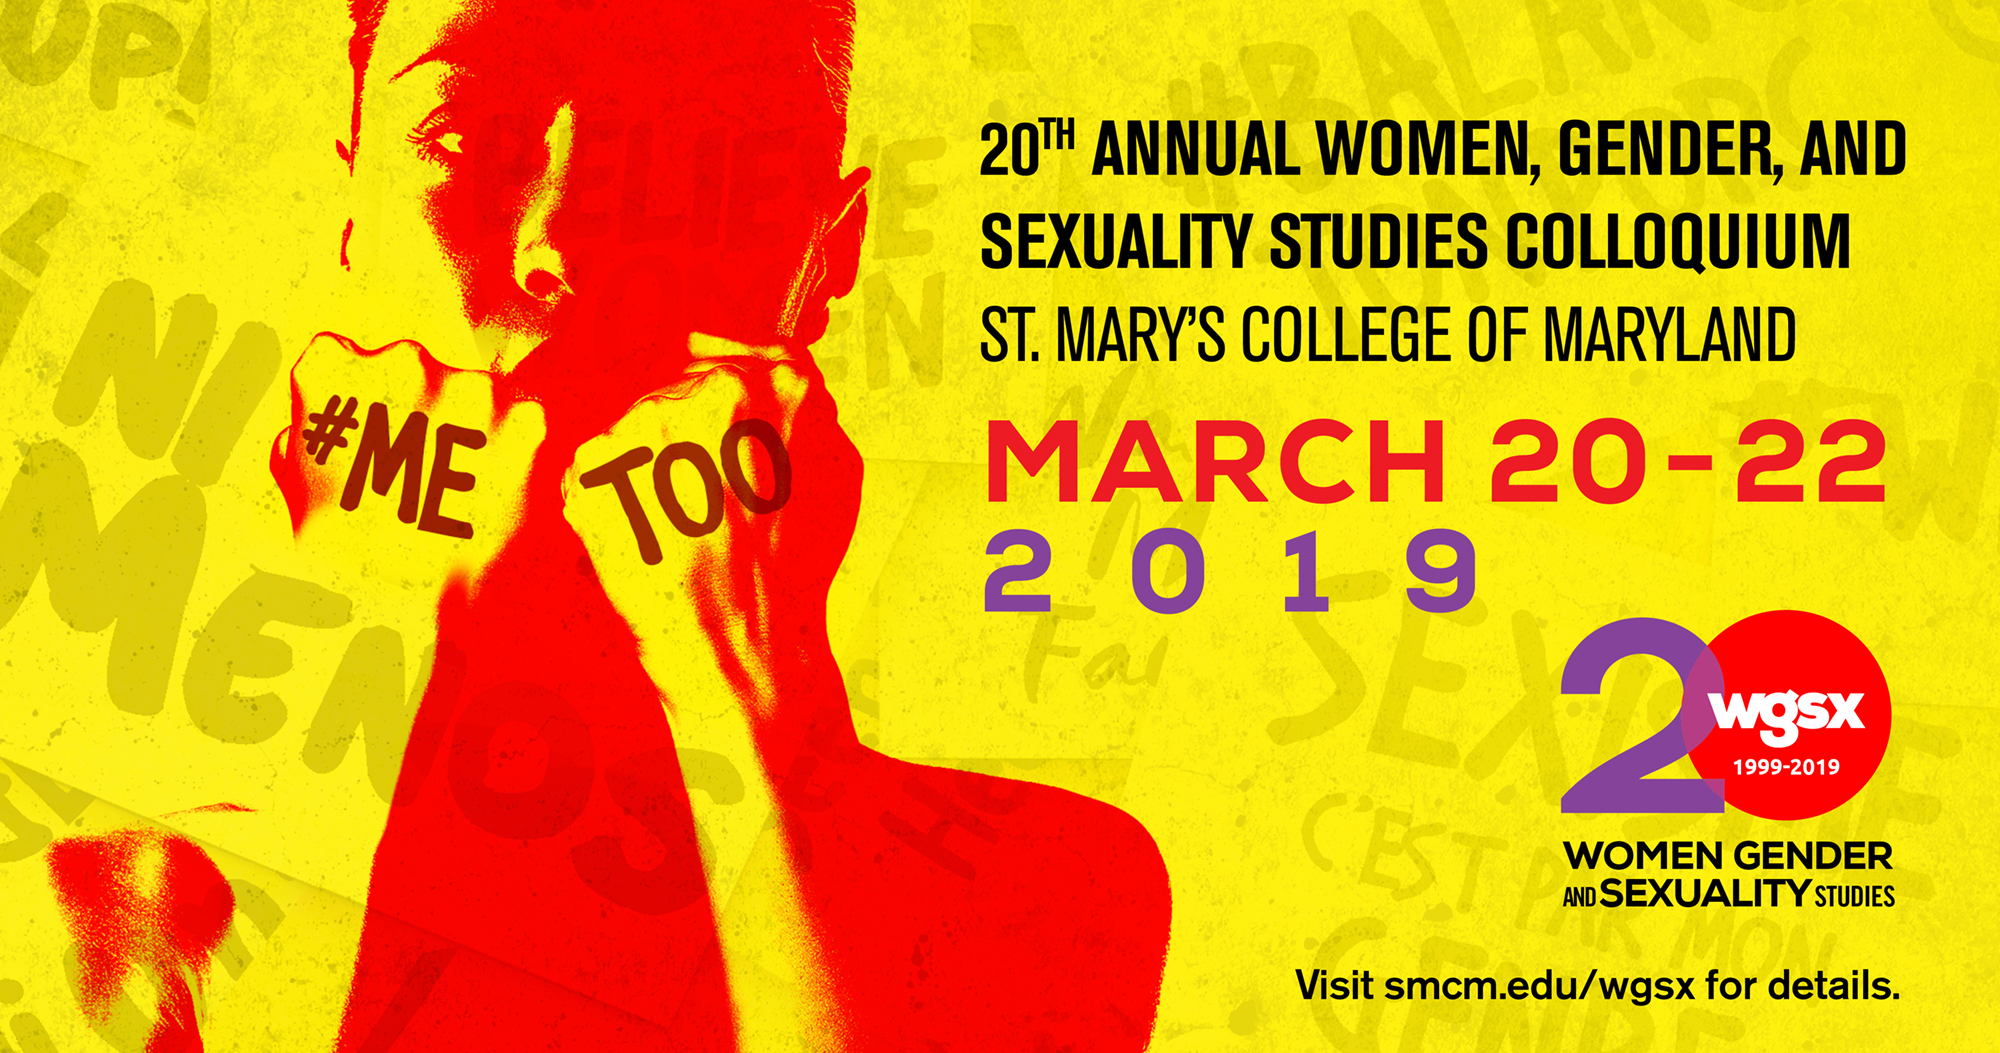 The 2019 WGSX Colloquium focuses on the #MeToo movement. The complexities of sexual consent, assault, and harassment are explored both within and outside of the United States